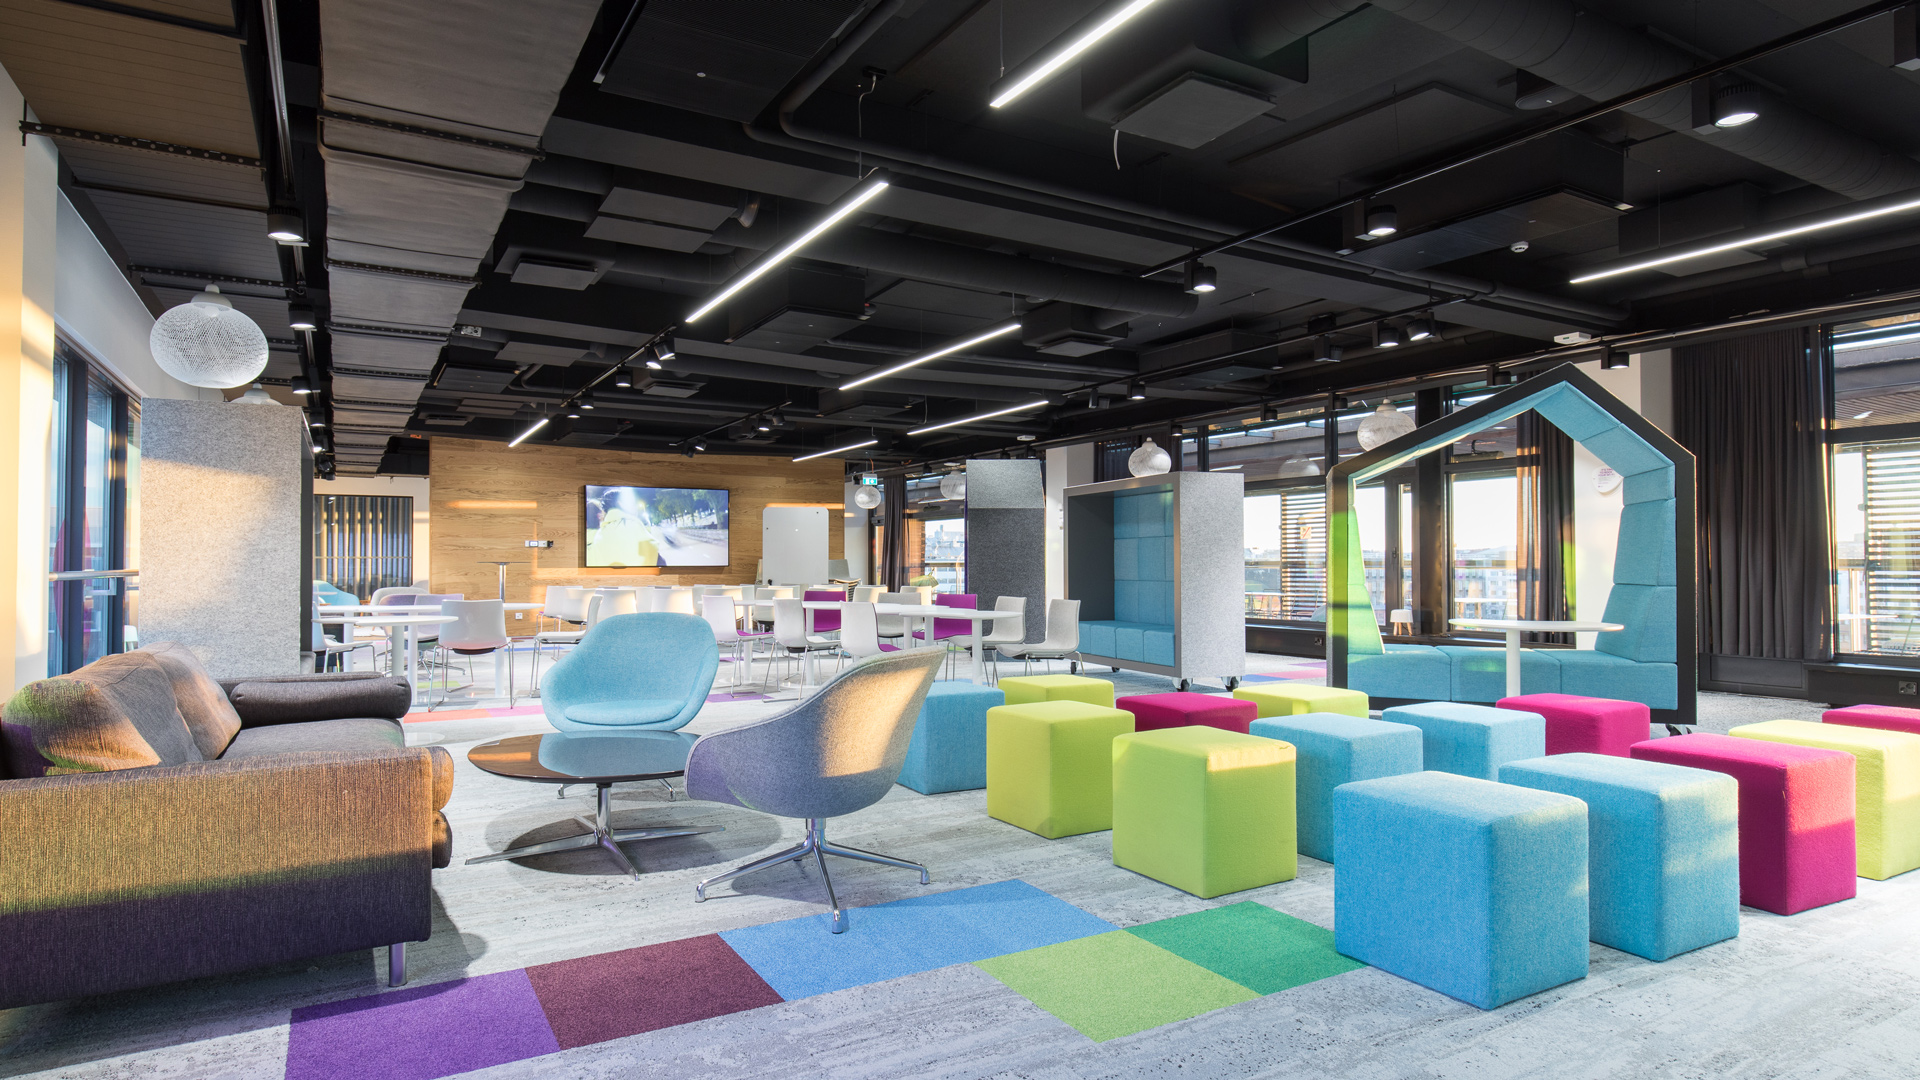 Telia-Finland-Headquarters-Teollisuuskatu-GI-Project-4